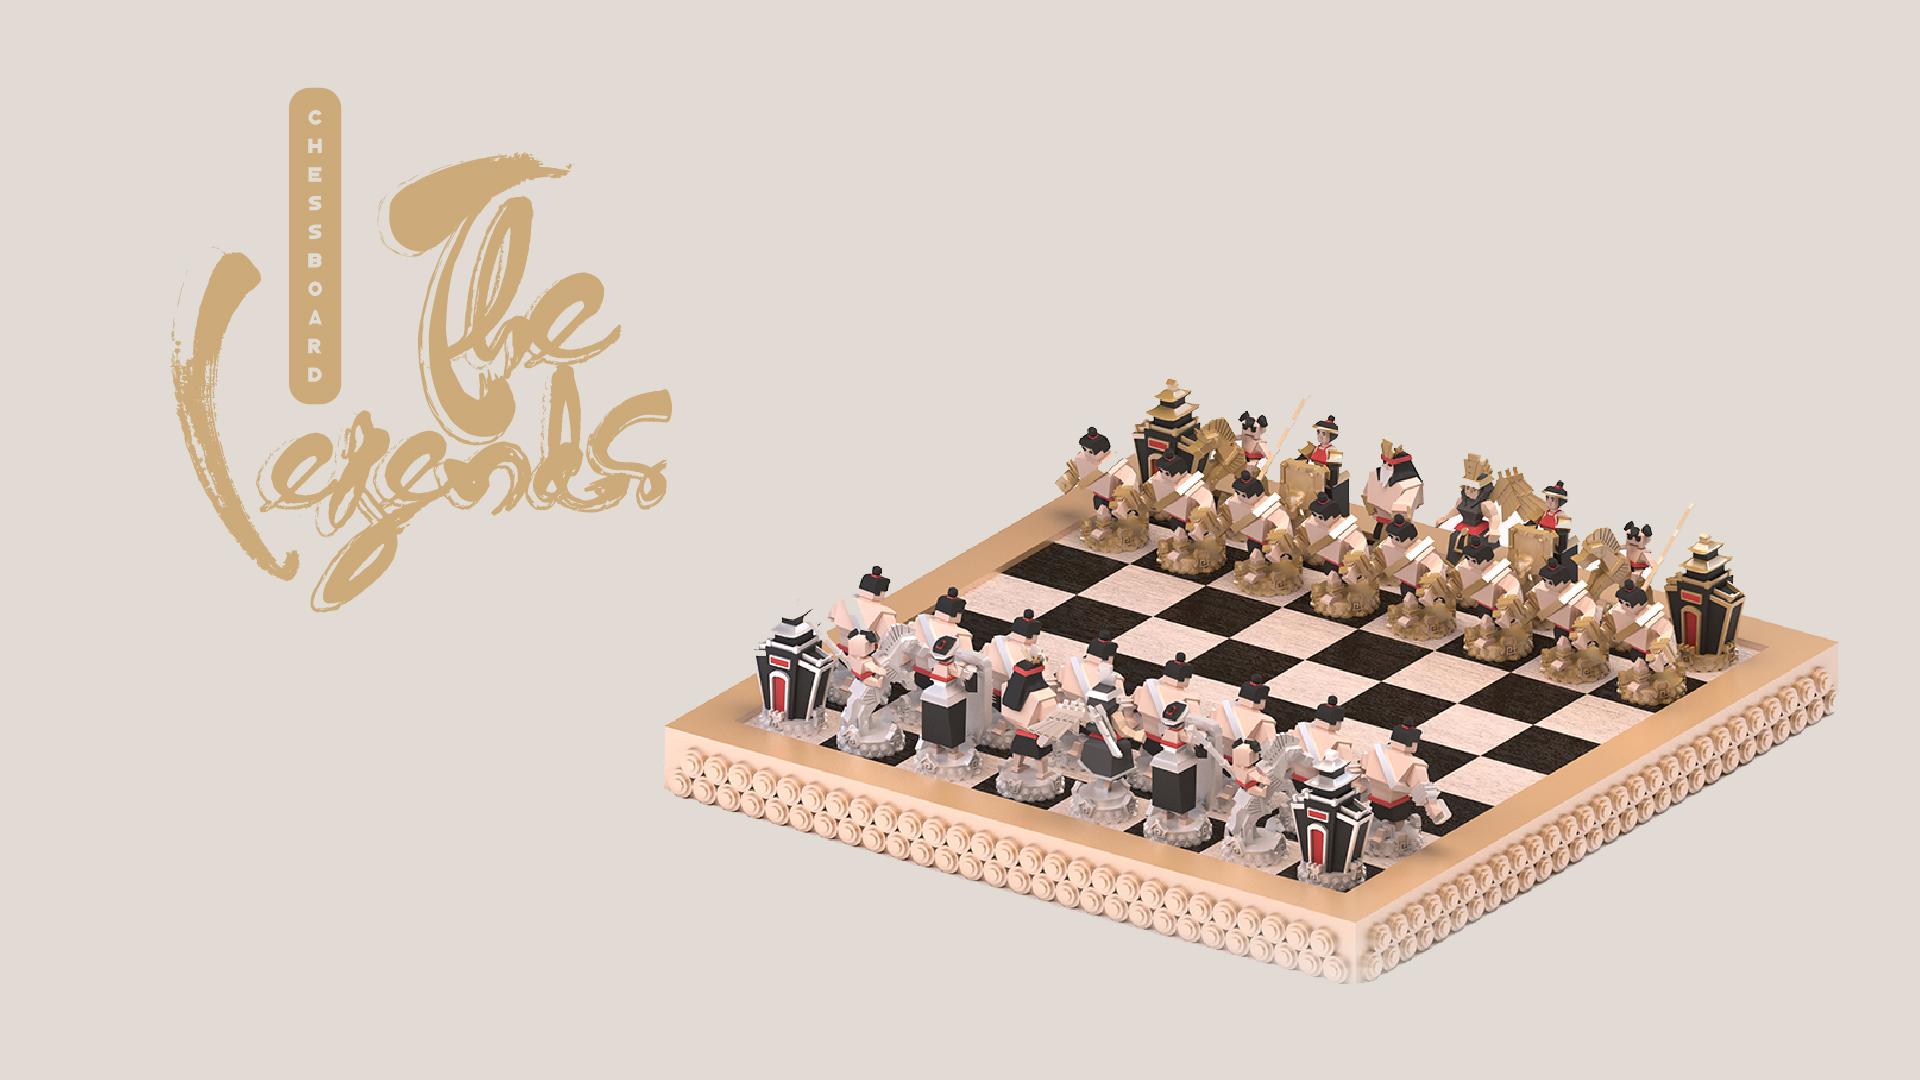 The Legends, chessboard